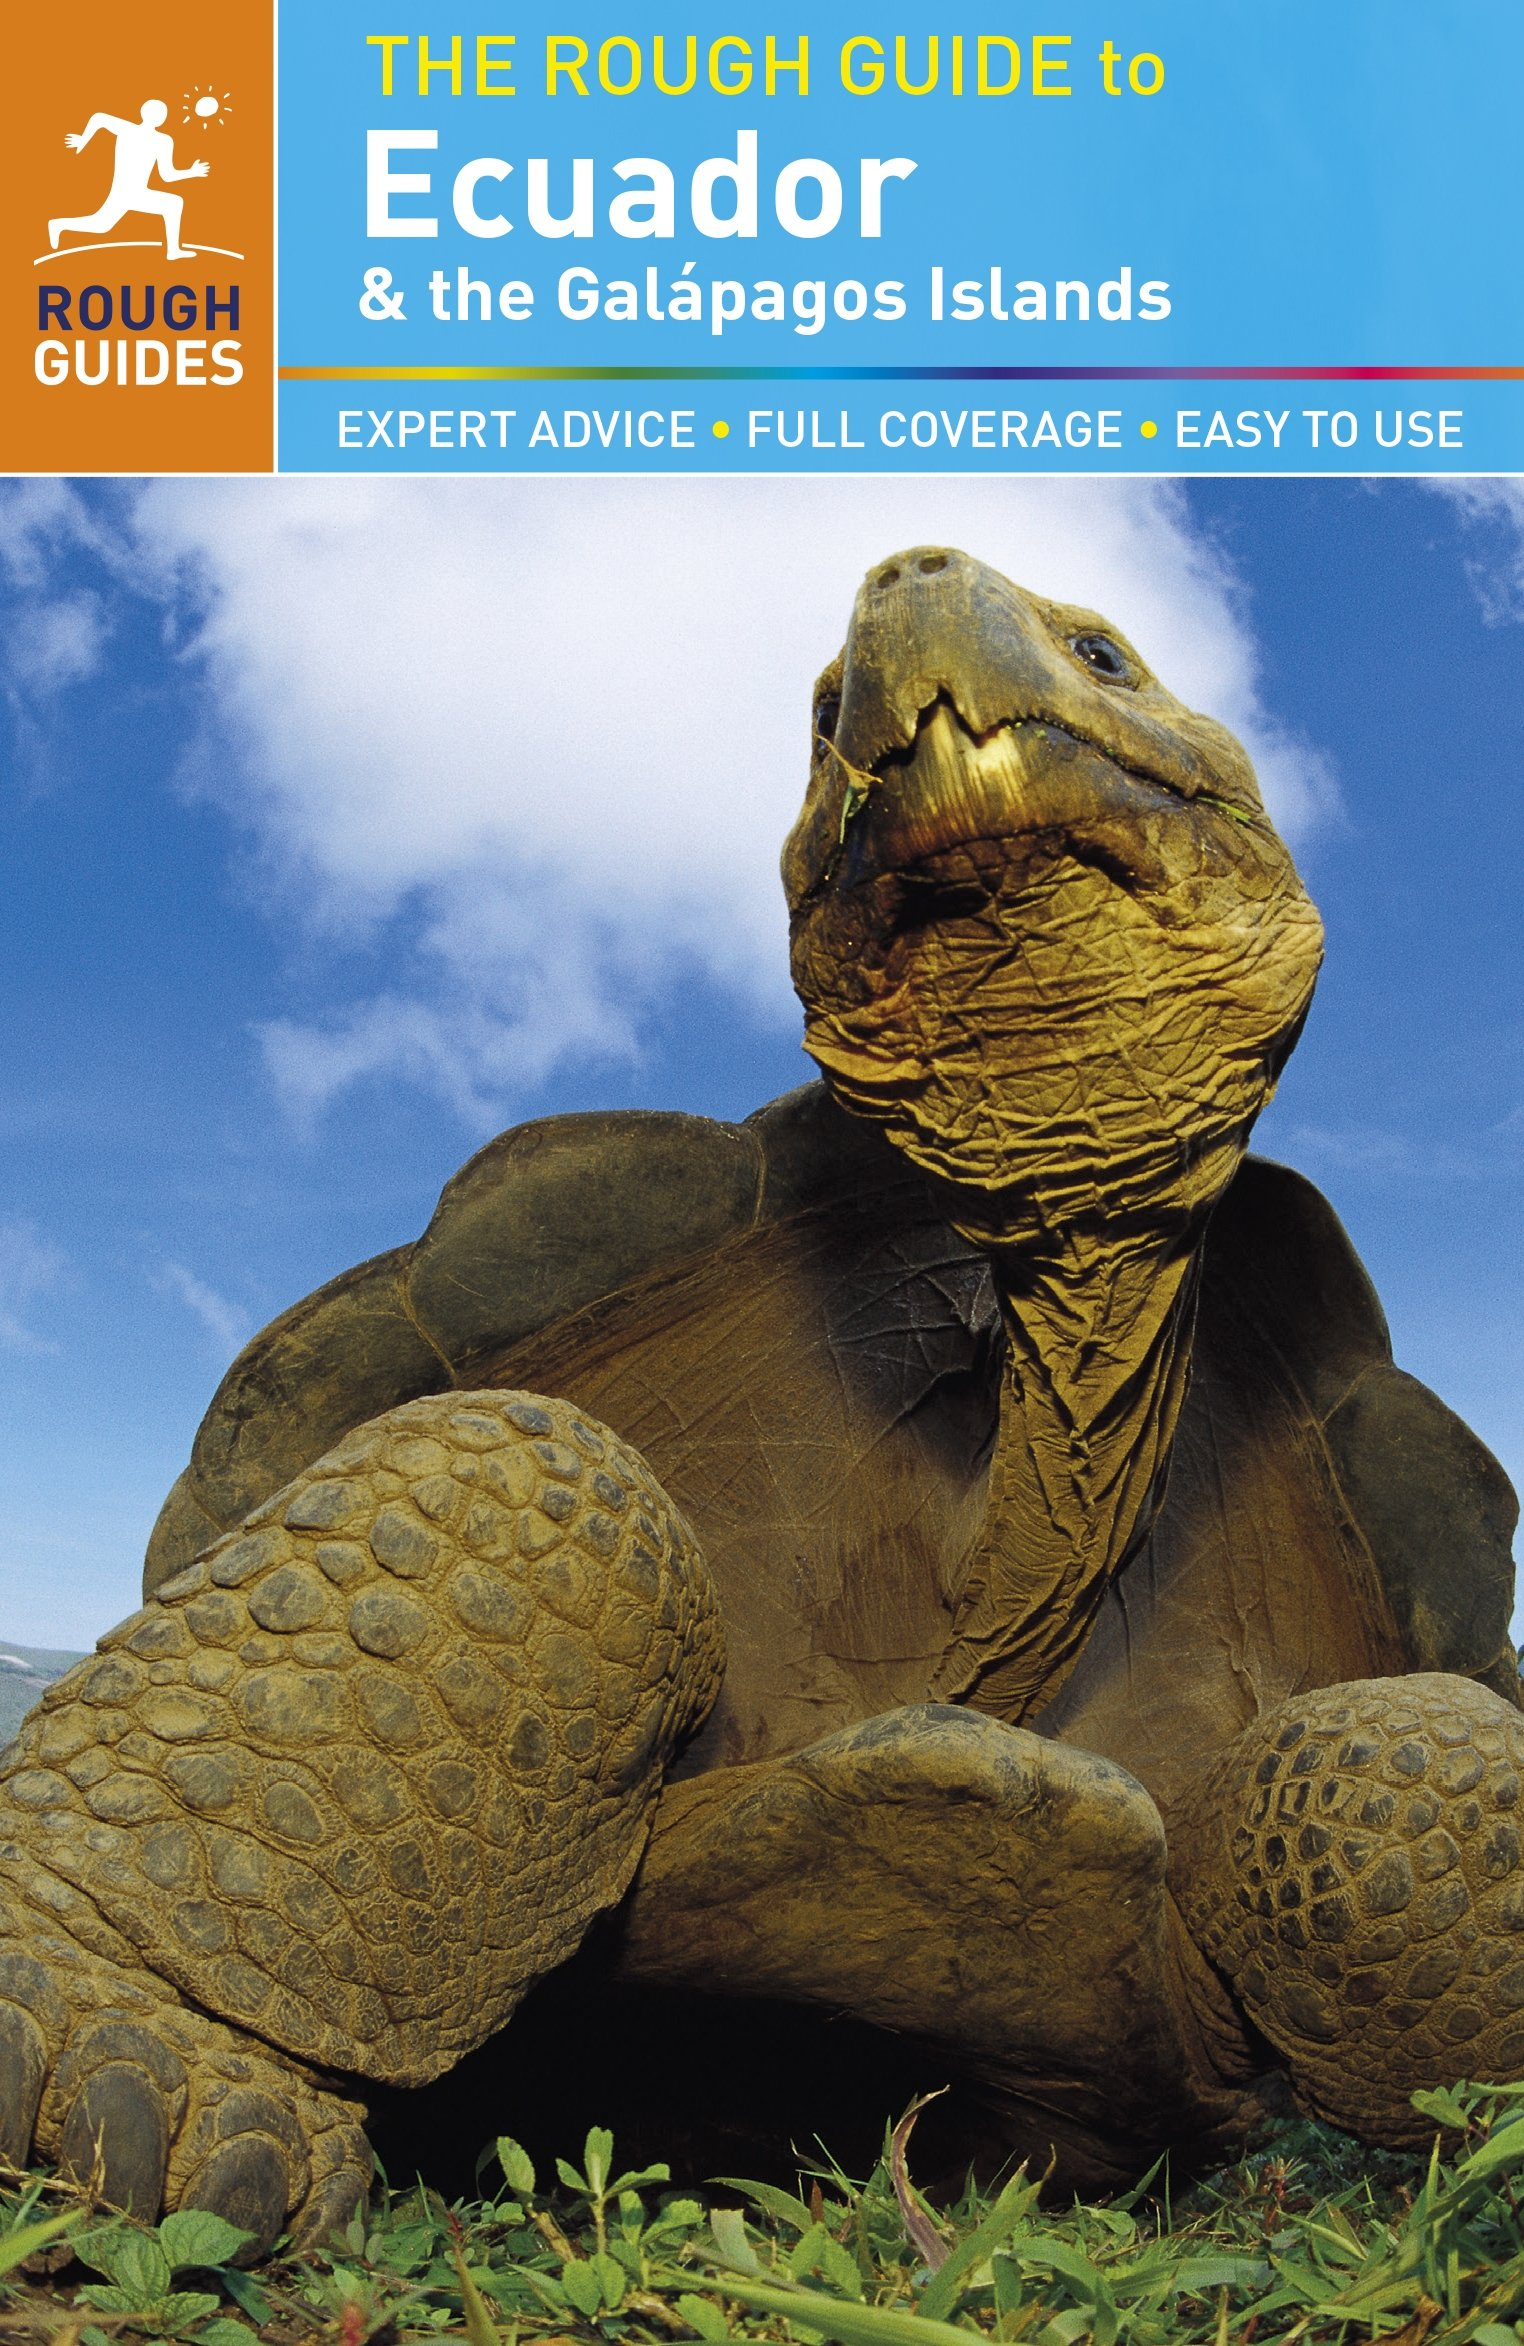 The Rough Guide to Ecuador & the Galápagos Islands